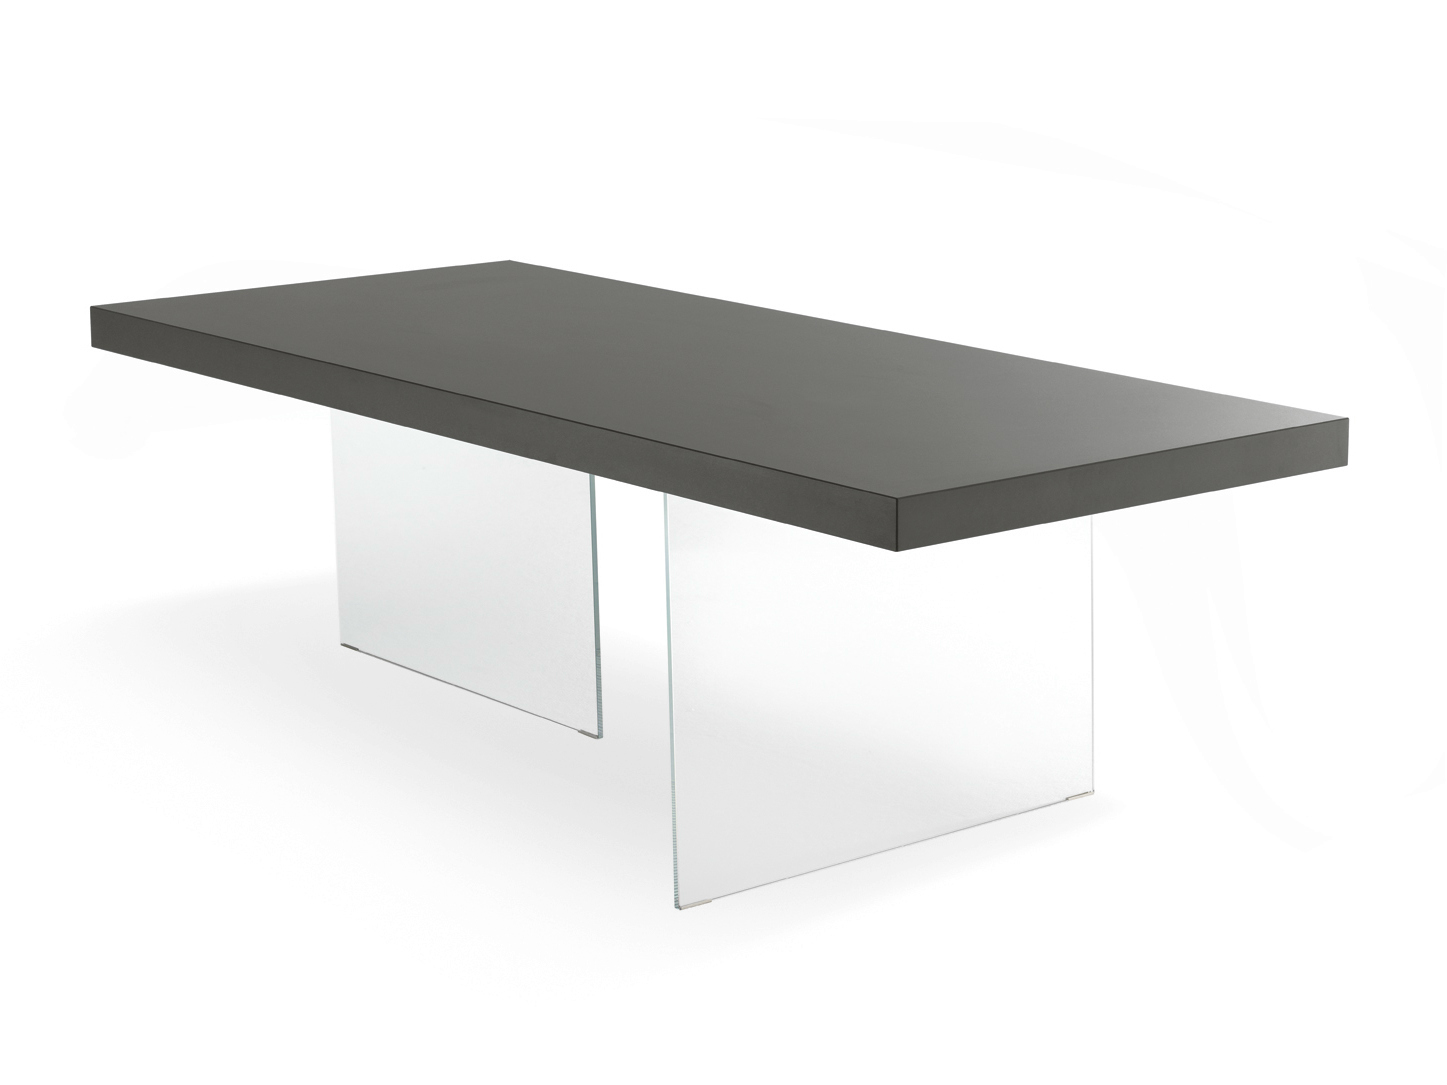 air quartz table by lago design daniele lago. Black Bedroom Furniture Sets. Home Design Ideas